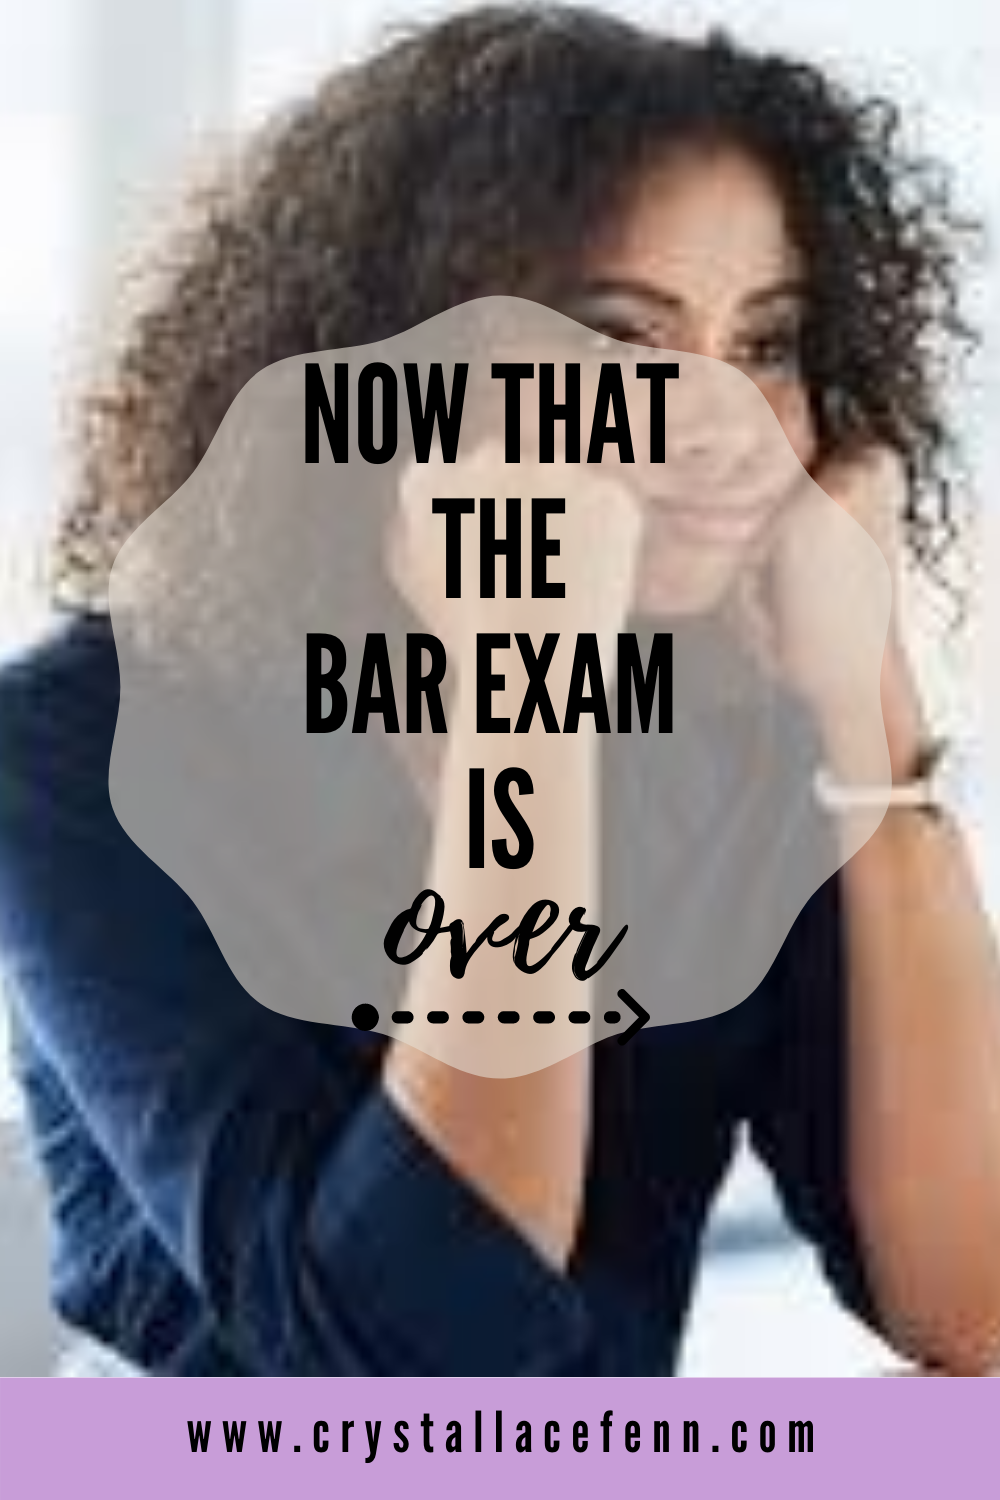 3 Tips to Immediately Help You Cope With Post Bar Exam Depression